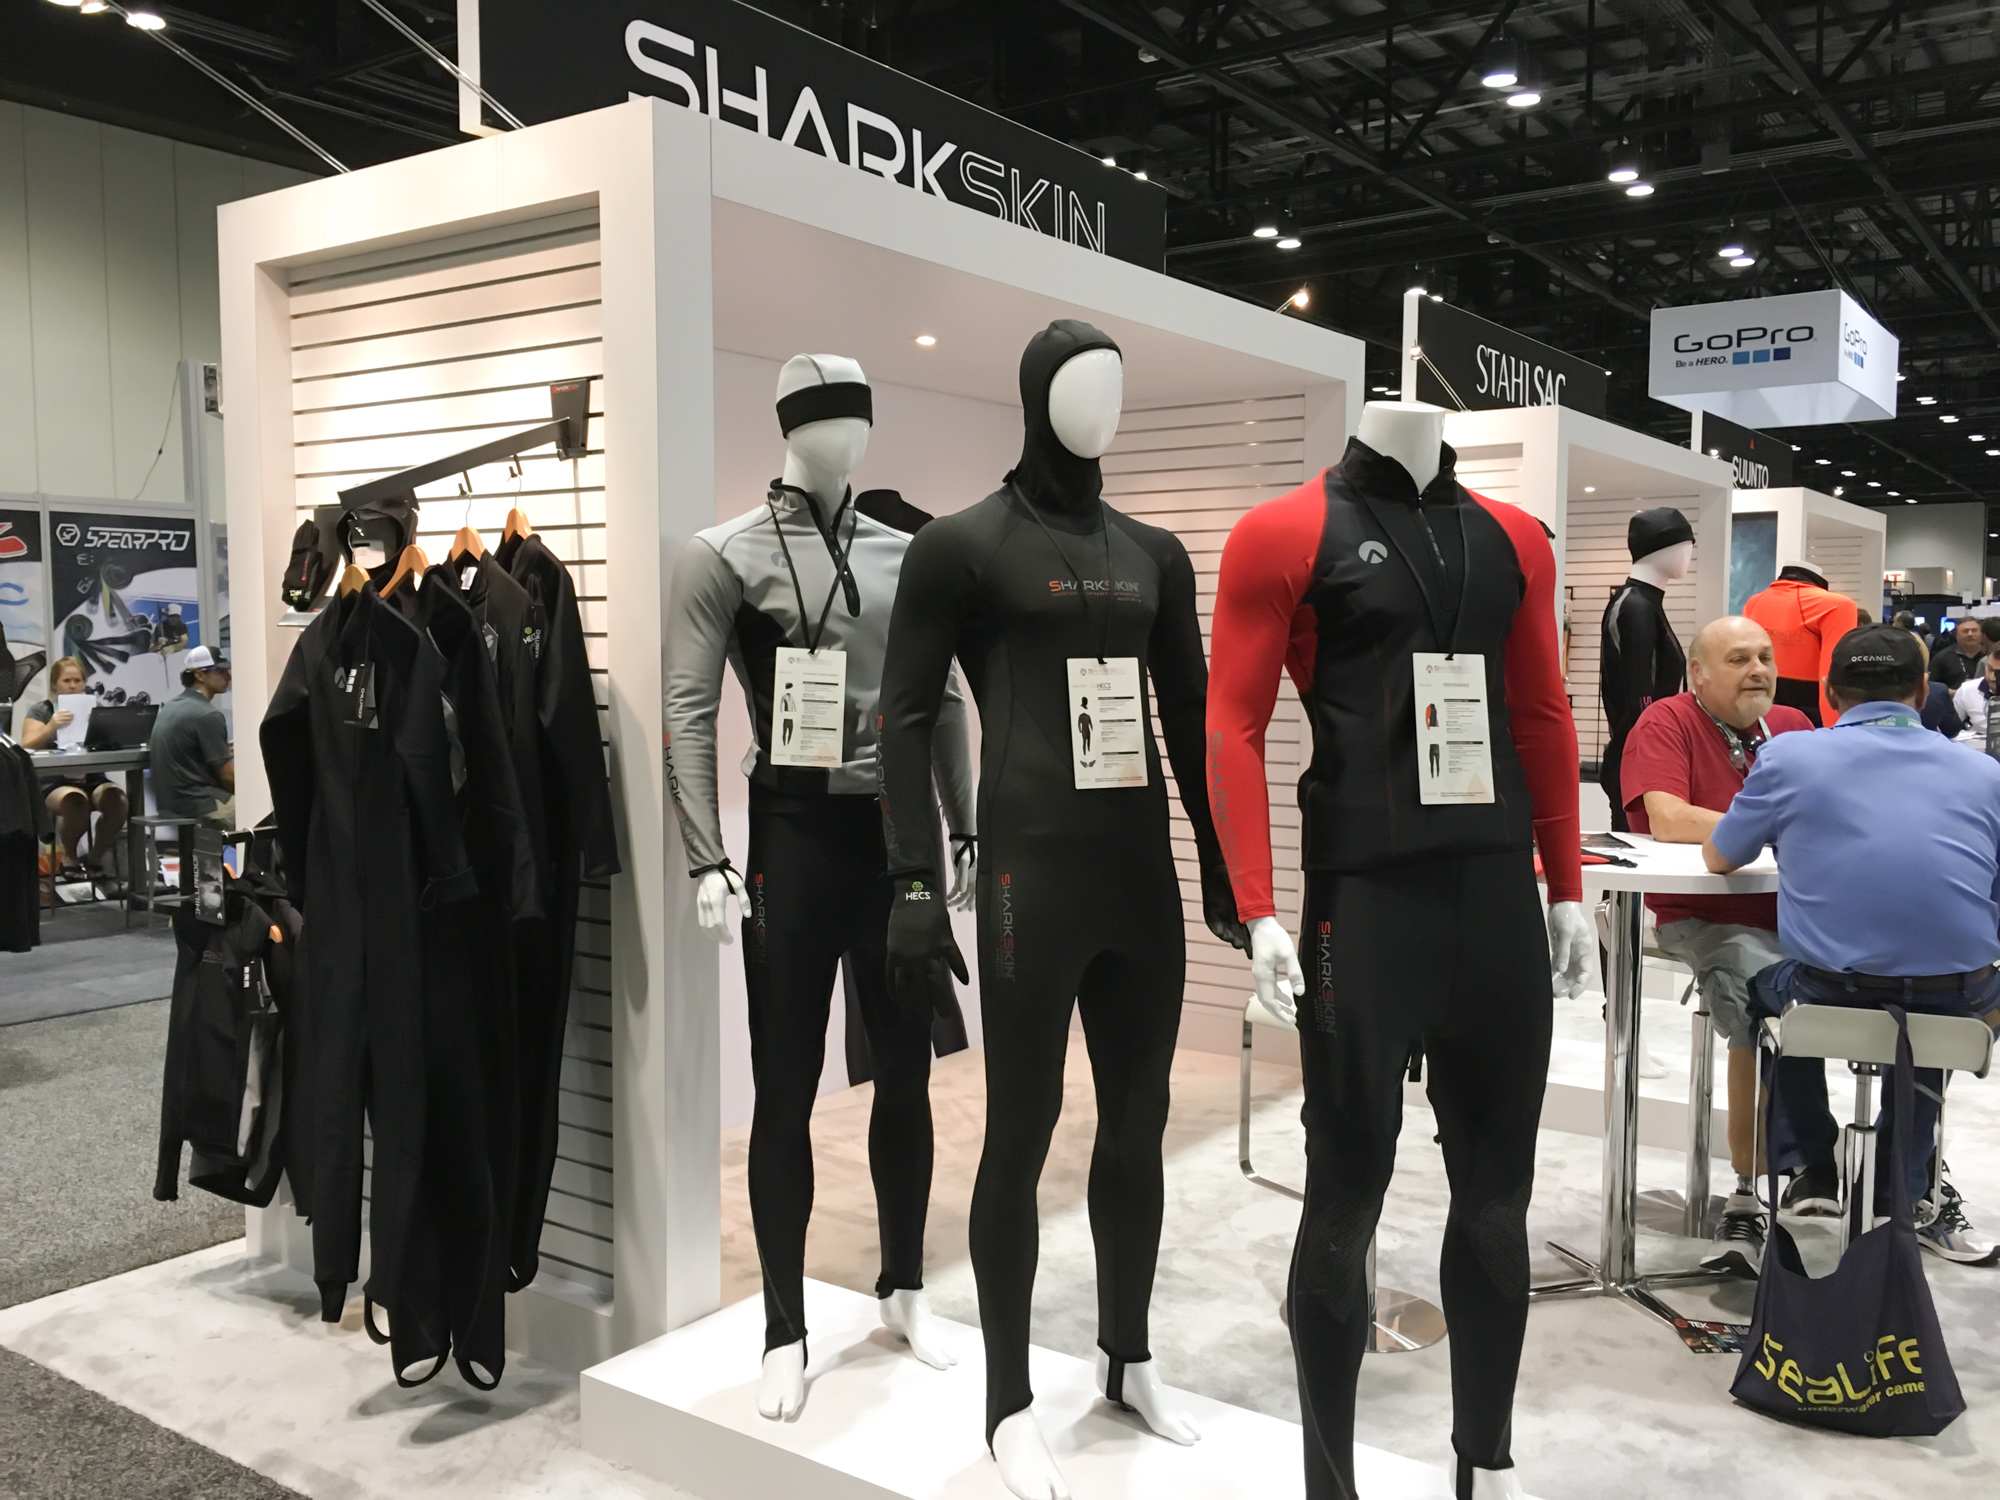 Australia-based Sharkskin (owned by Huish Outdoors)